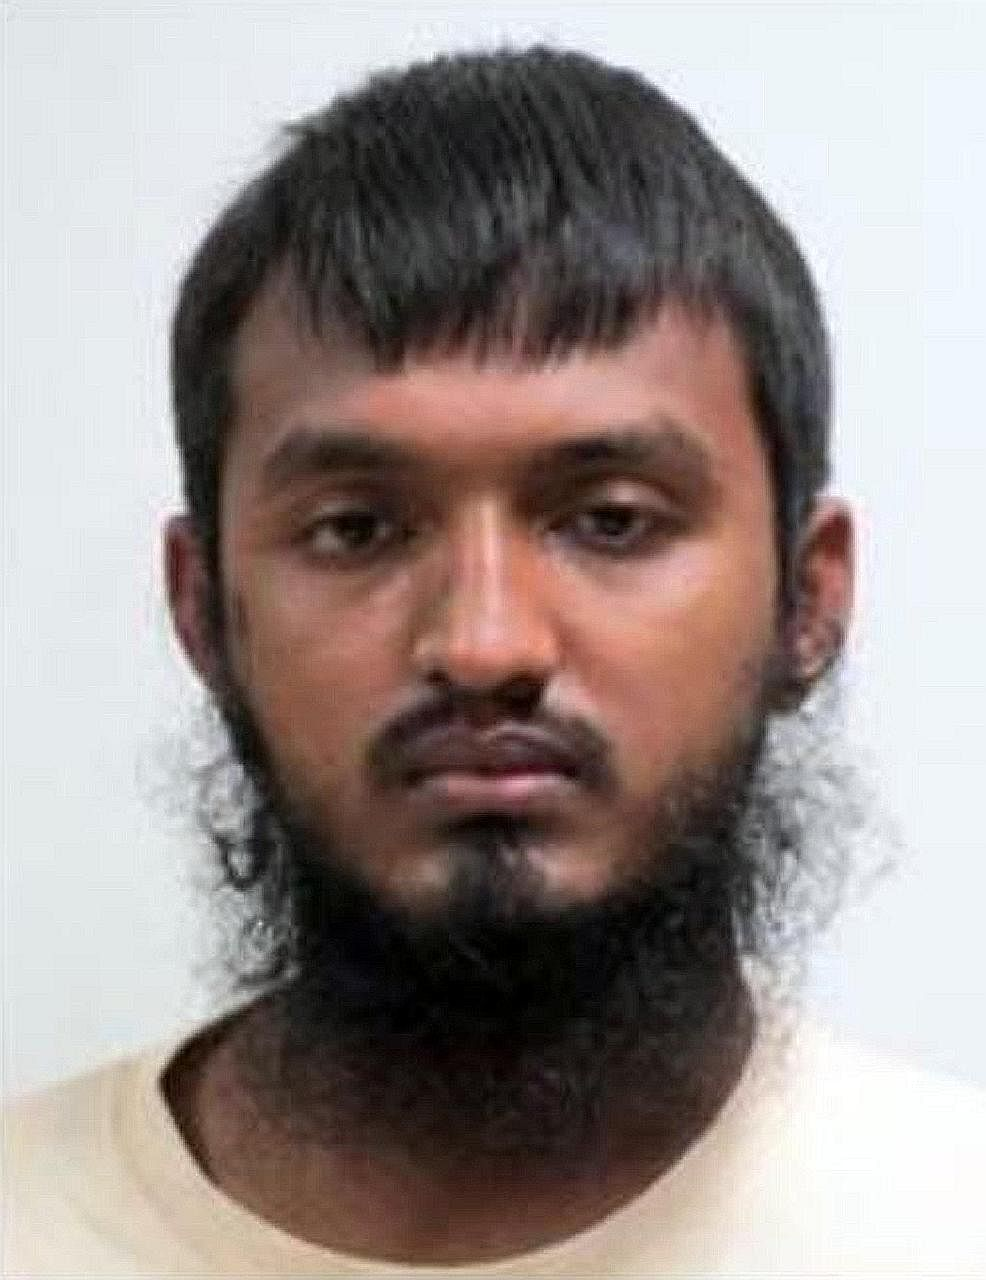 Ahmed Faysal intended to carry out attacks in Bangladesh, said the Ministry of Home Affairs.